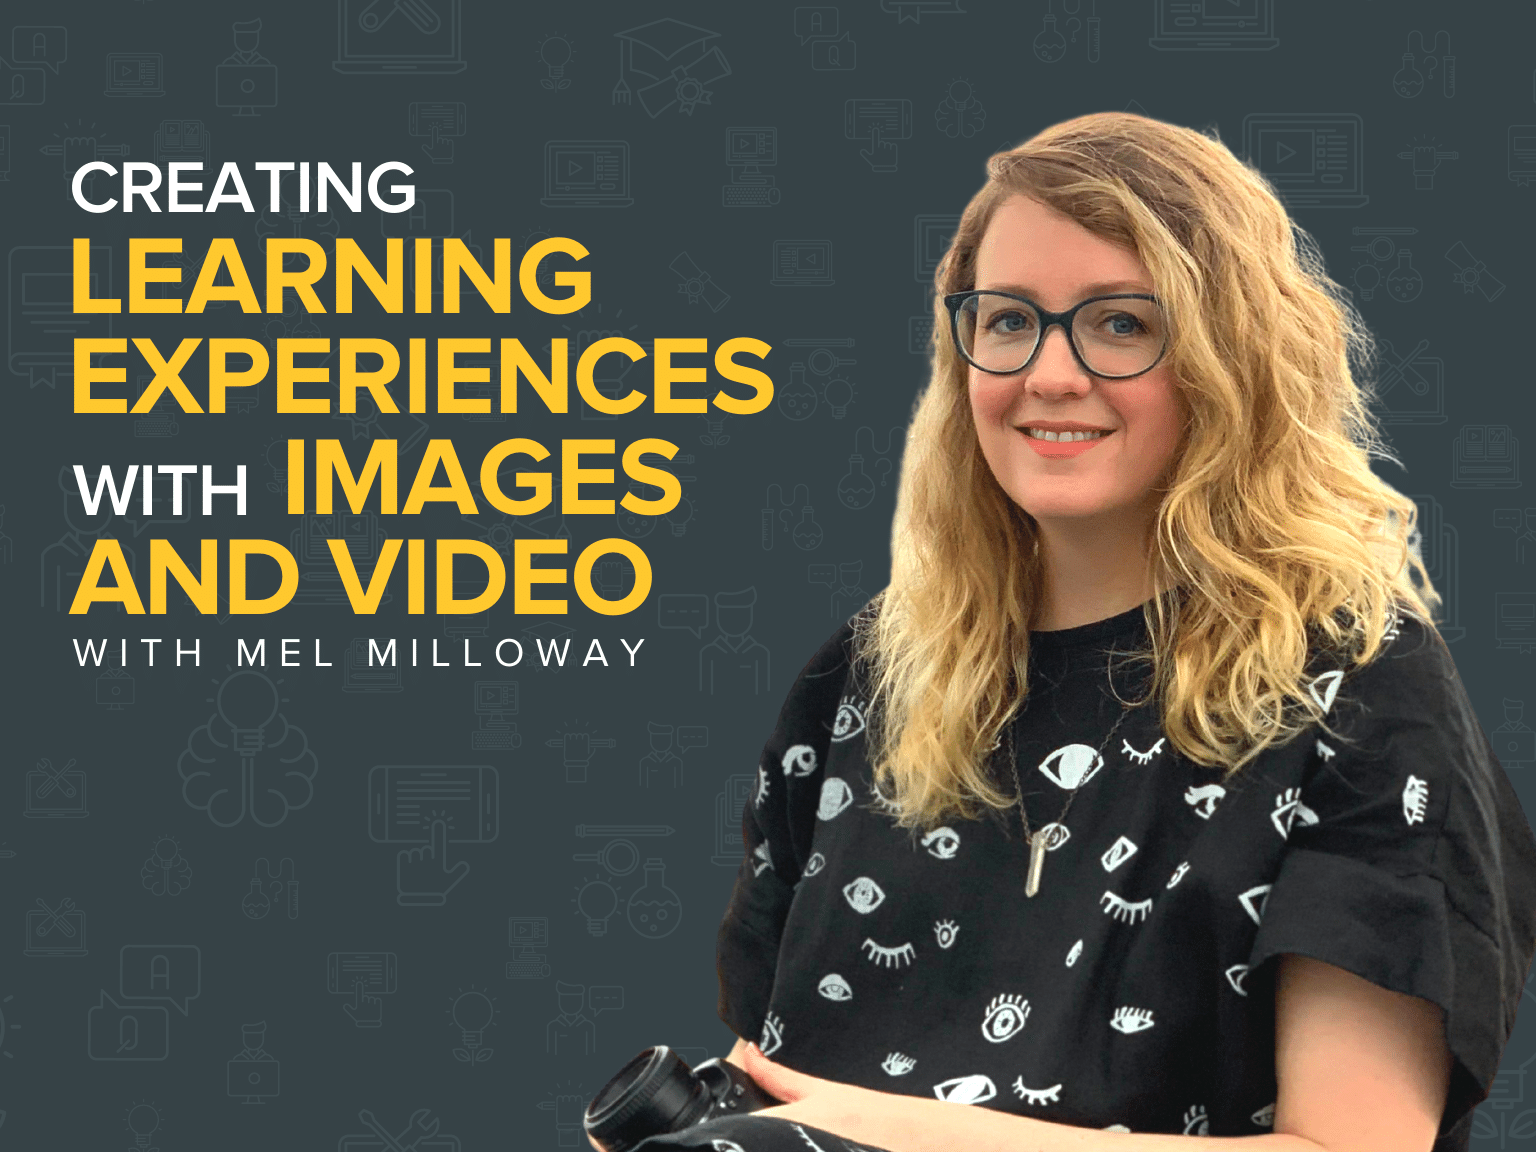 Creating Learning Experiences With Images and Video   Mel Milloway